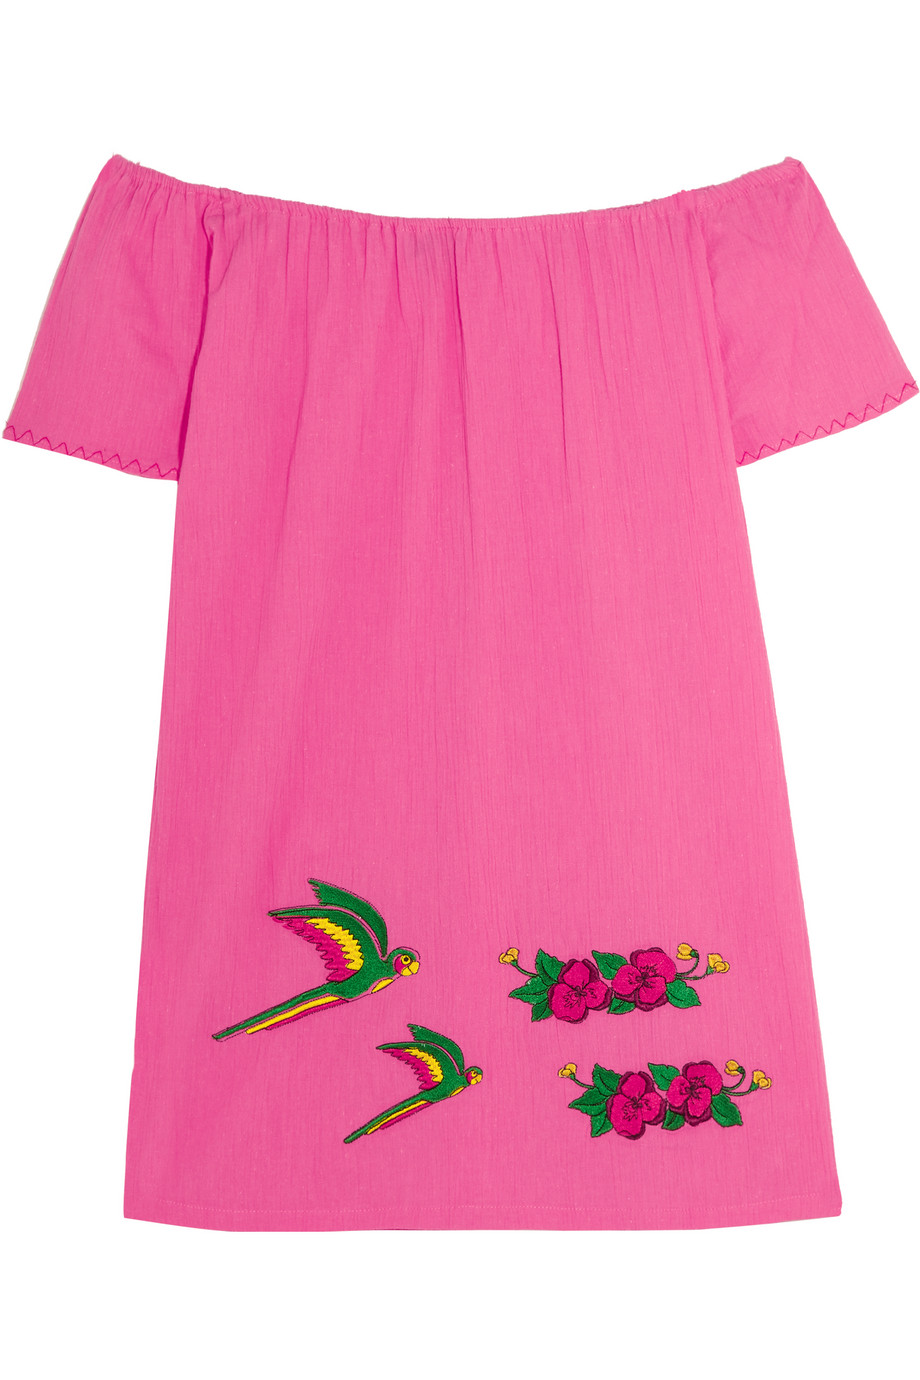 Sensi Studio Off-the-Shoulder Embroidered Cotton Mini Dress, Pink, Women's - Embroidered